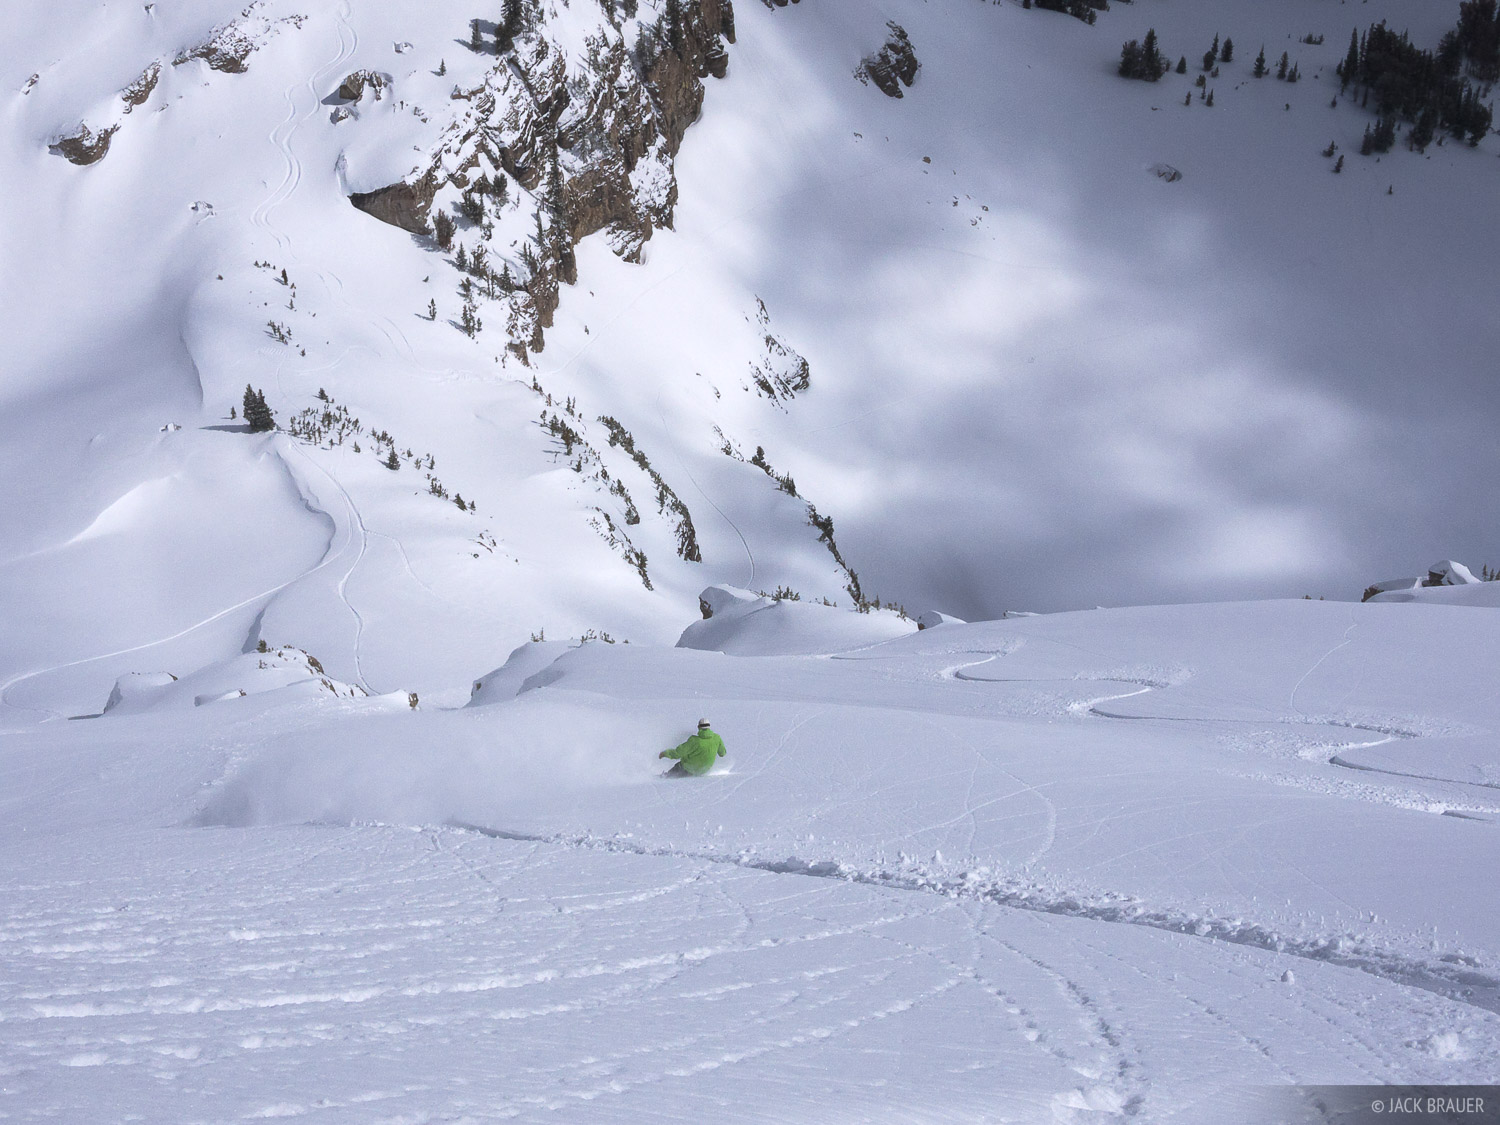 Rajat Bhayani lays out a high speed carve in the Jackson Hole backcountry - March.